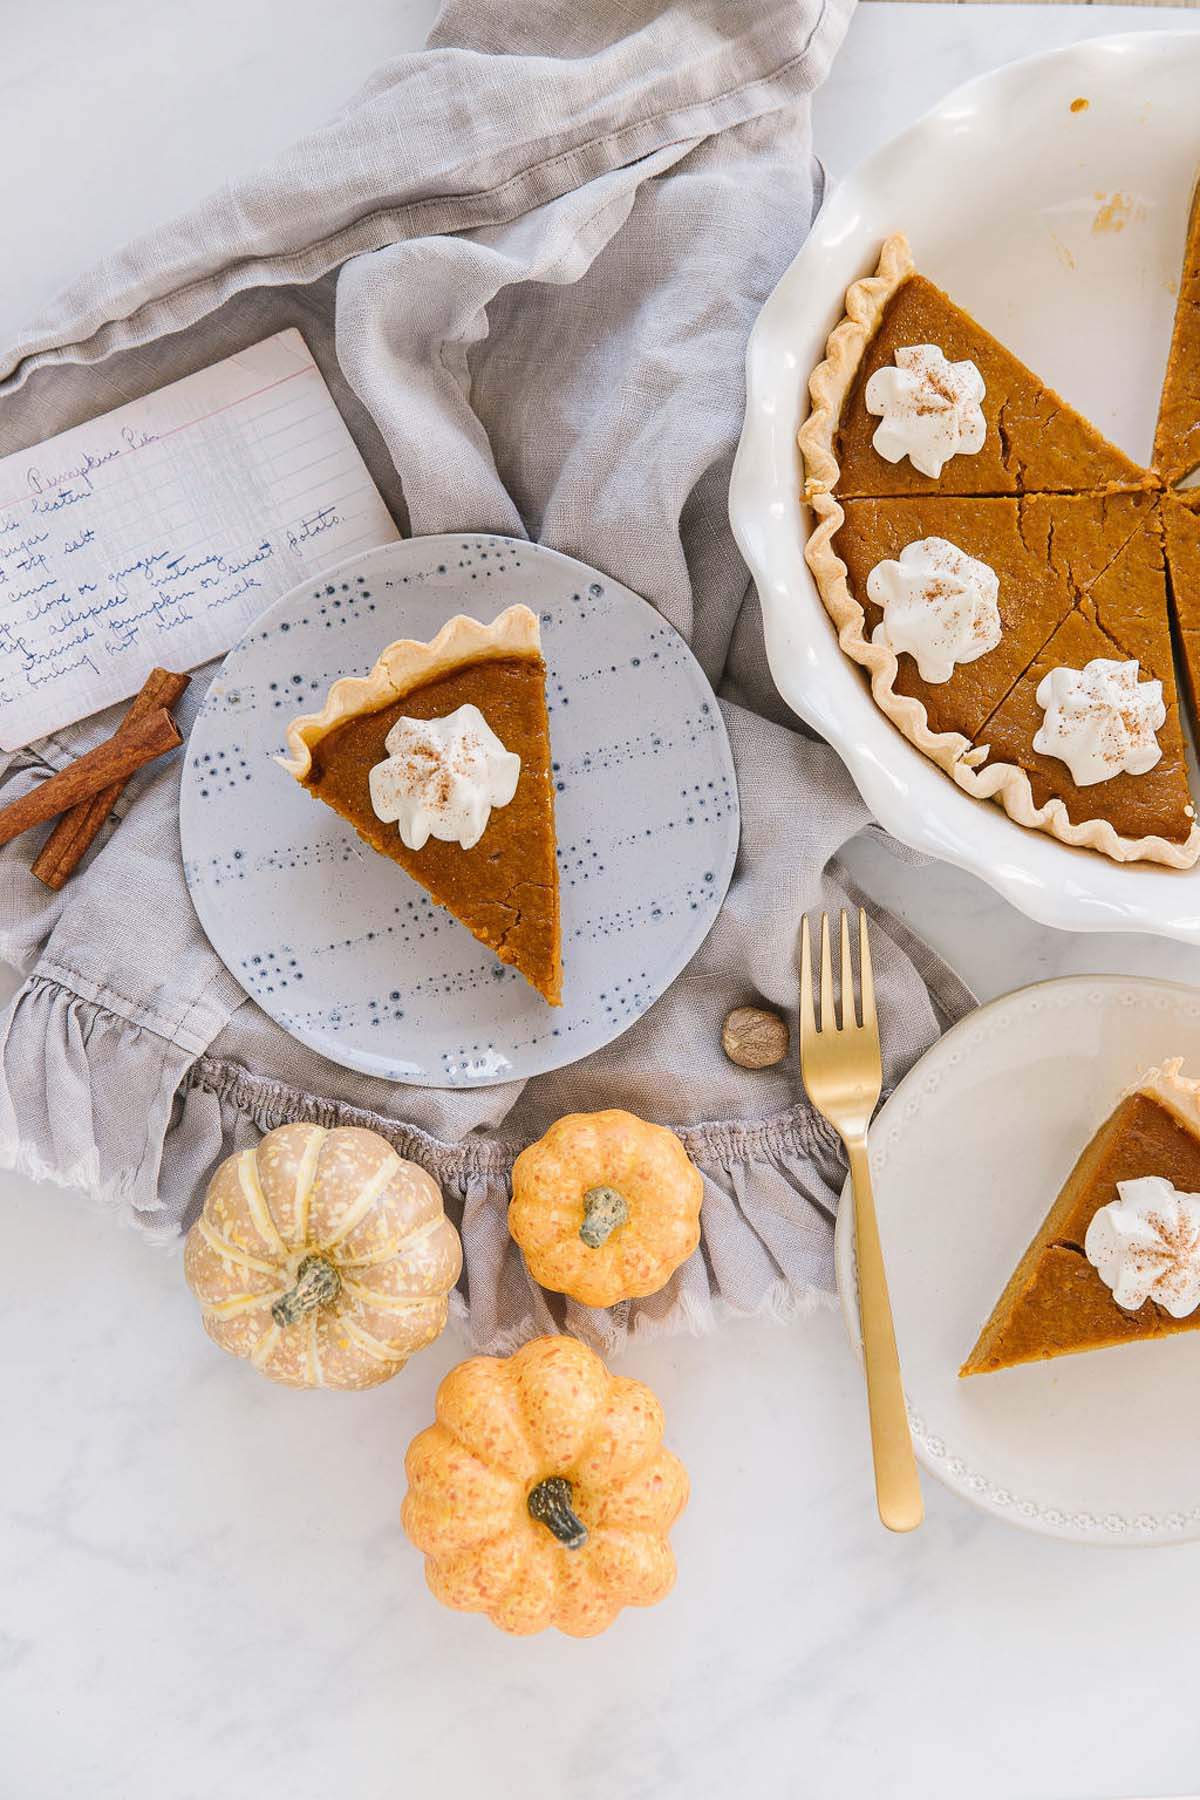 A blue plate with a pumpkin pie piece with whipped cream and a handwritten recipe card behind it with a white plate with another piece of pumpkin pie with a gold fork while other pieces of pie sit in a white pan.